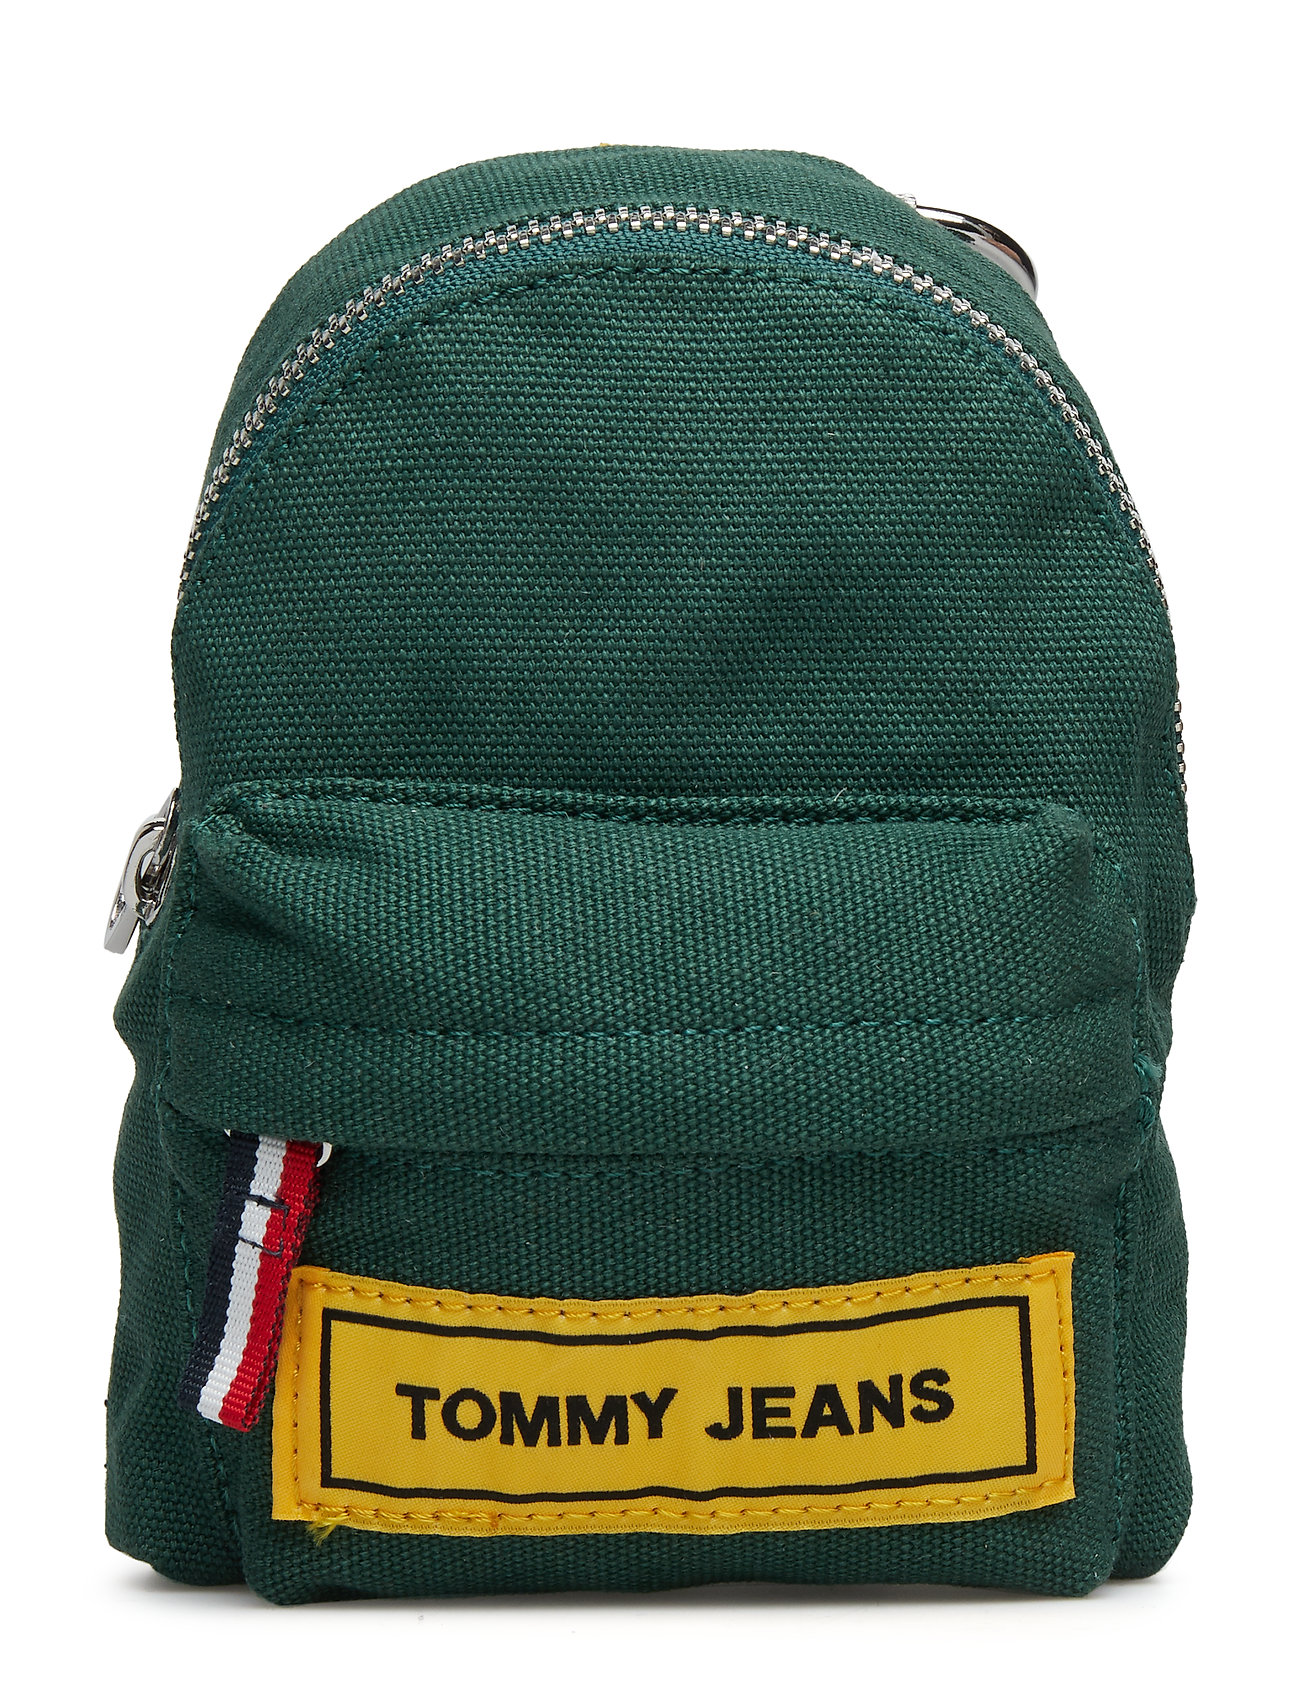 Tommy Hilfiger TJ LOGO TAPE HANGING - HUNTER GREEN MIX